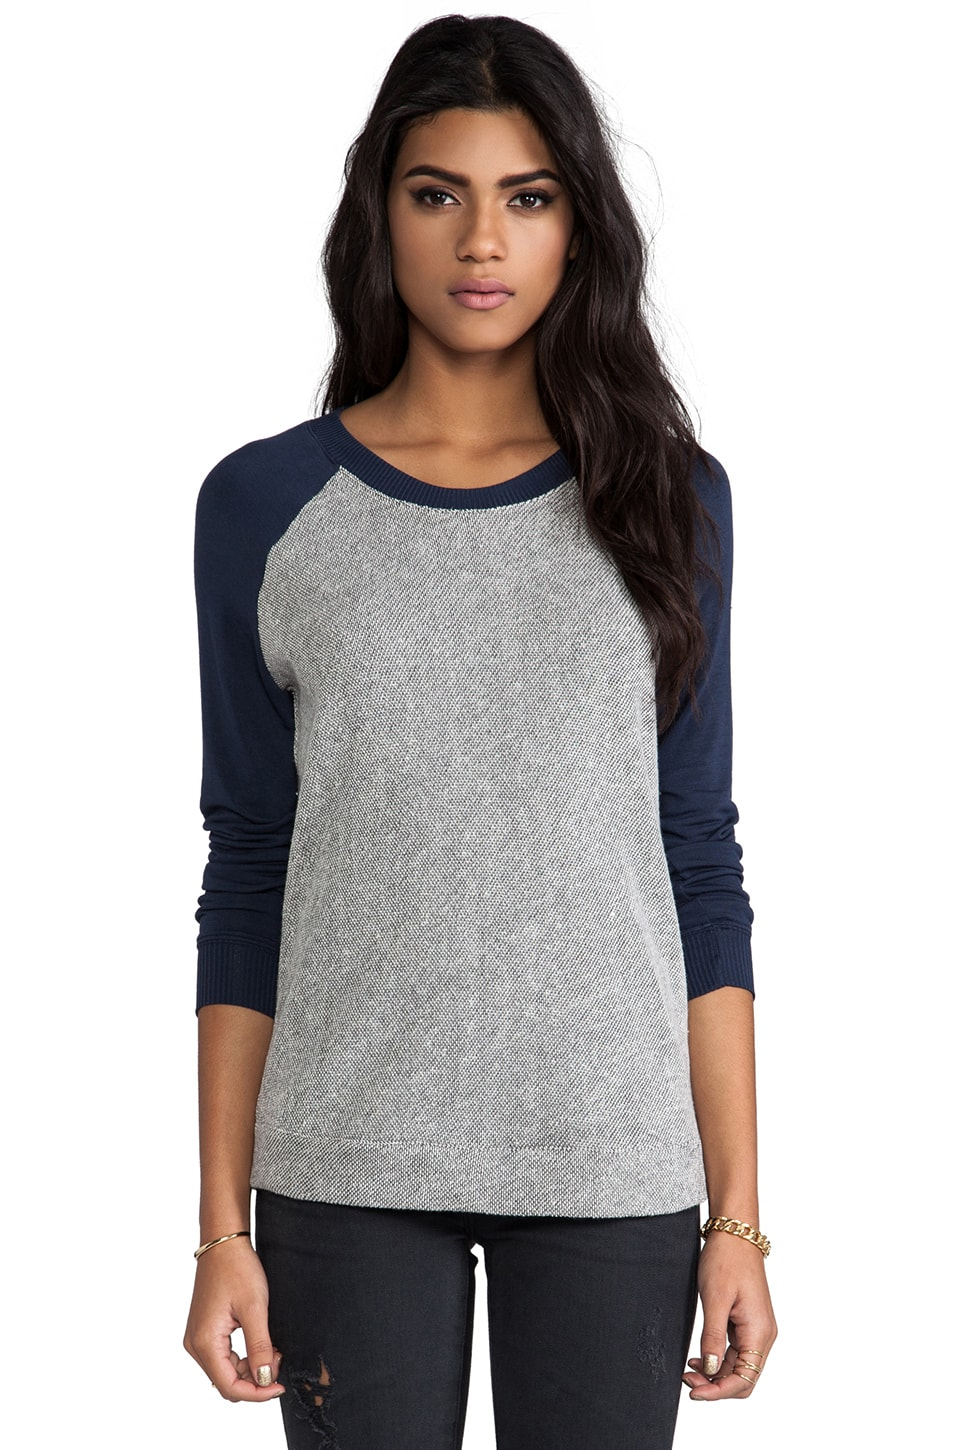 Bella Luxx French Terry Raglan Pullover in Heather Grey & True Navy